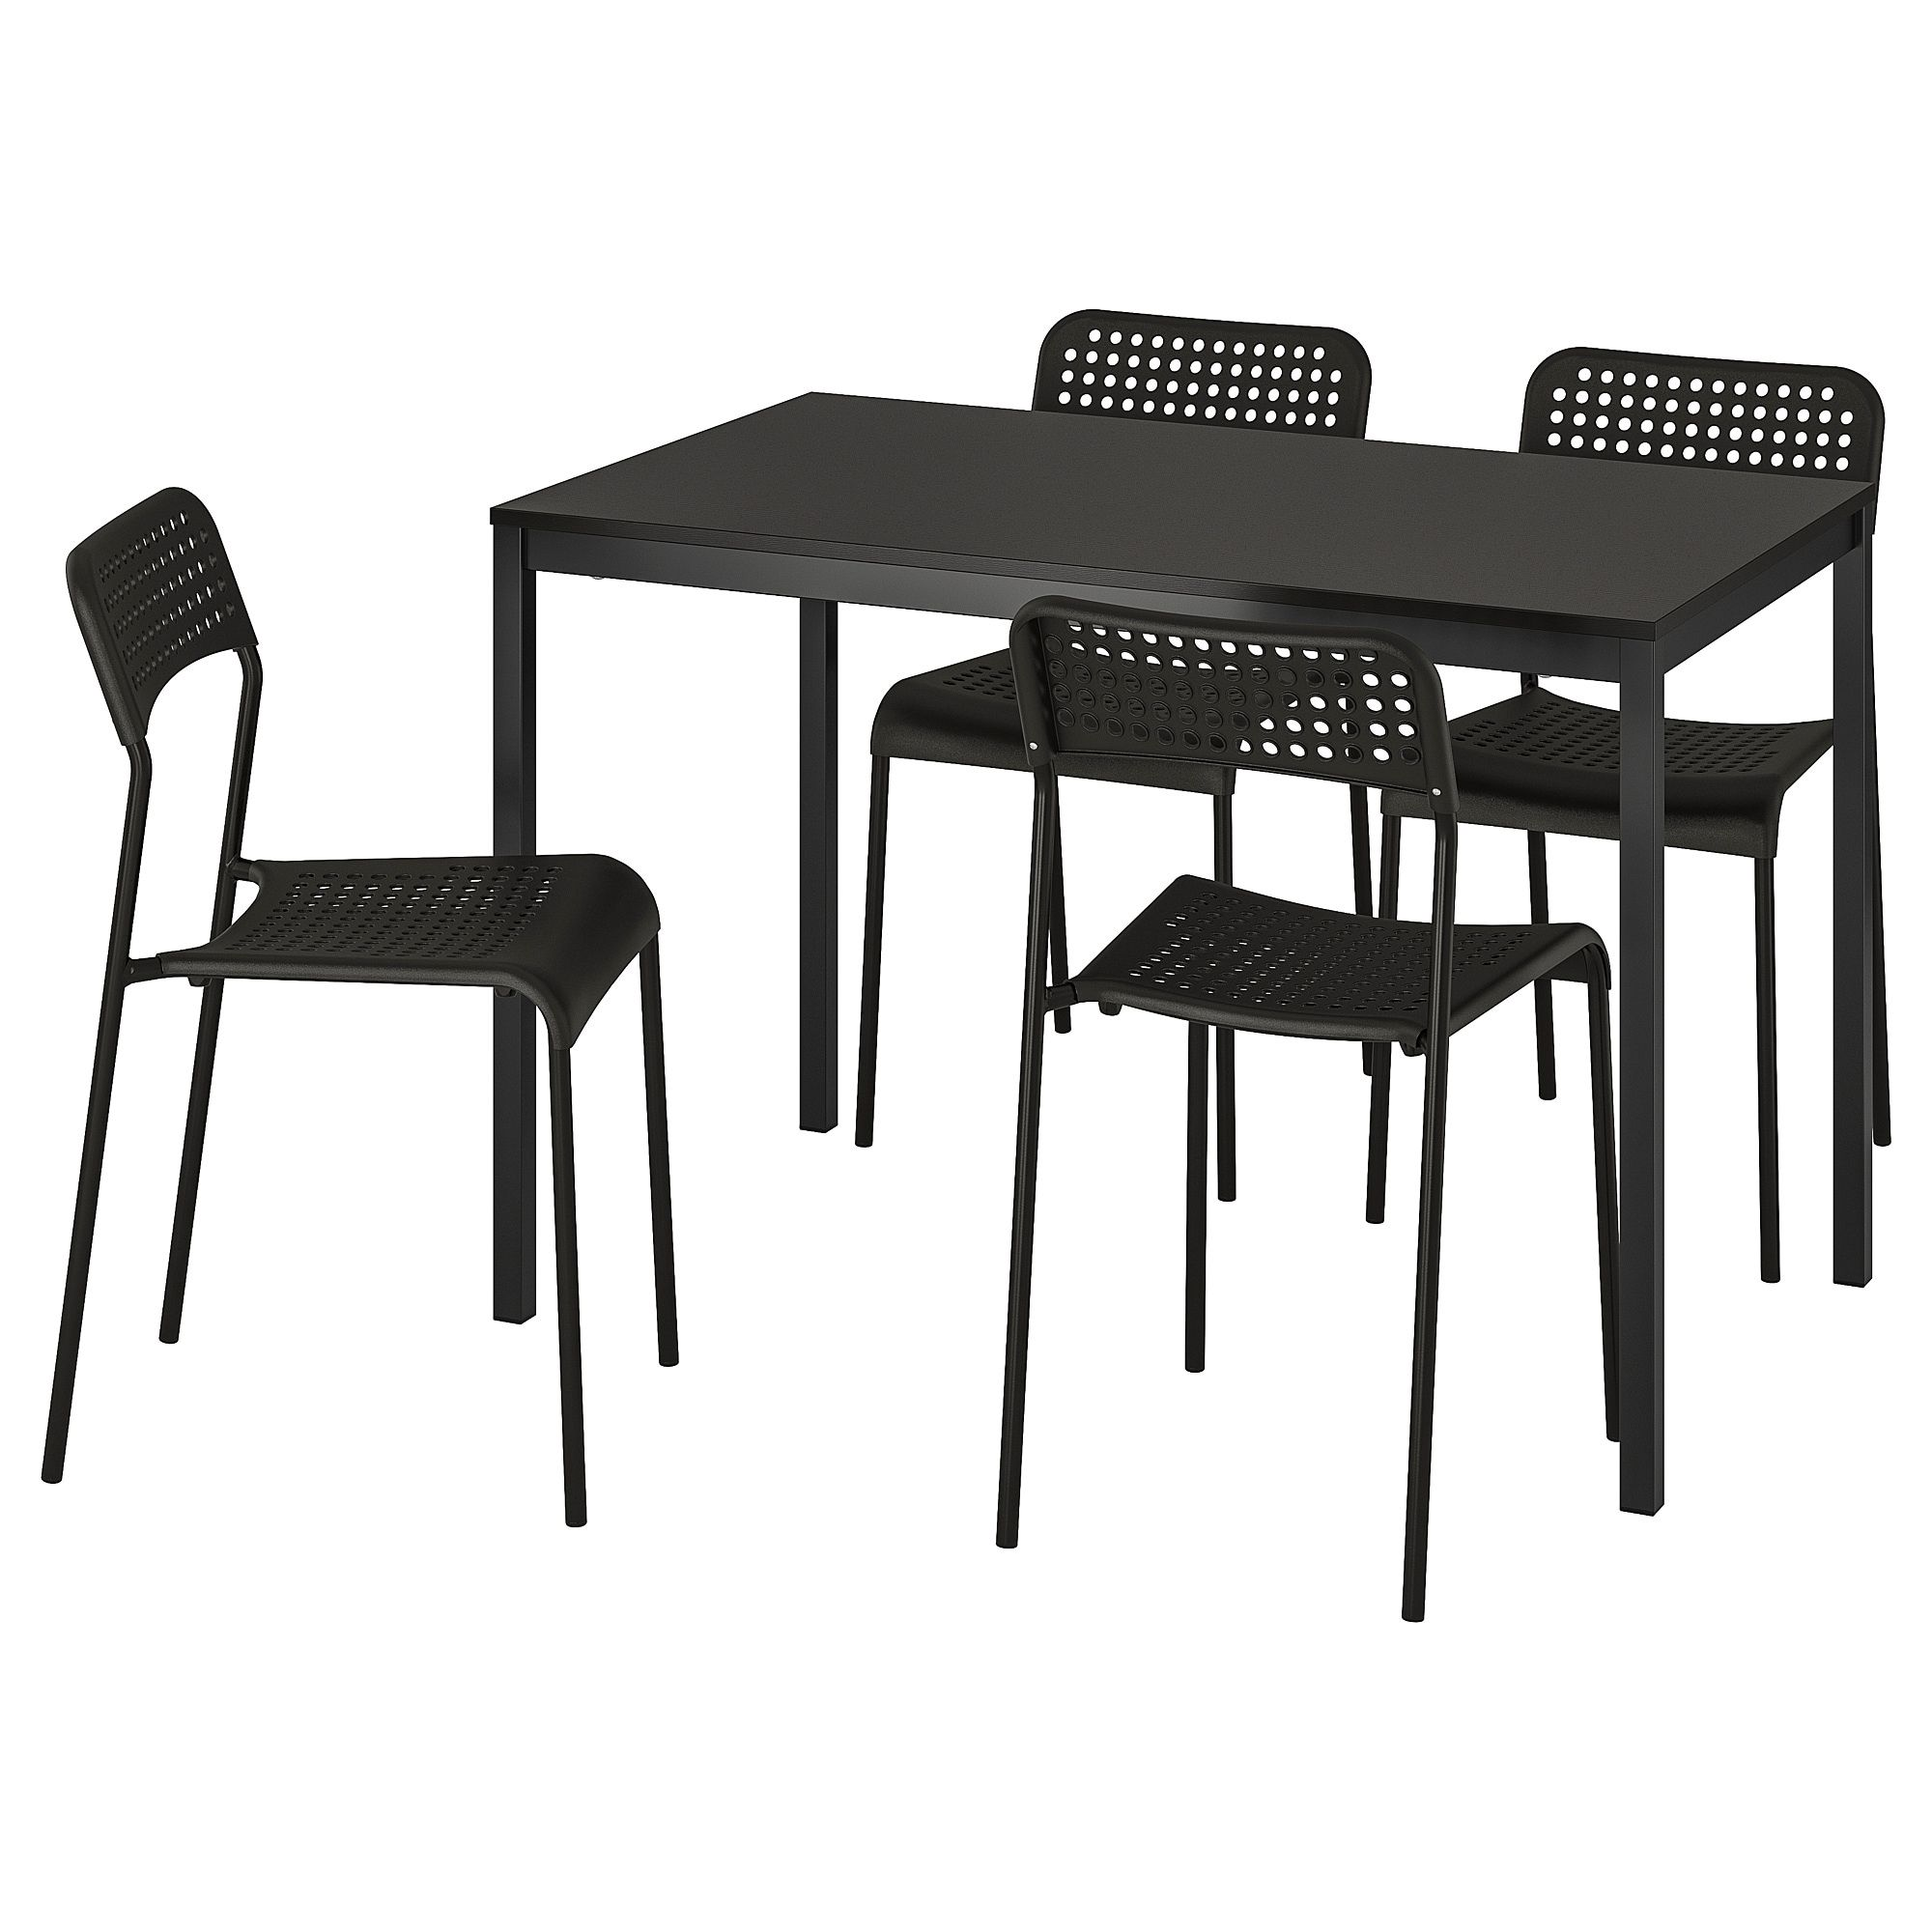 Tarendo Adde Table And 4 Chairs Black 43 1 4 Ikea Table